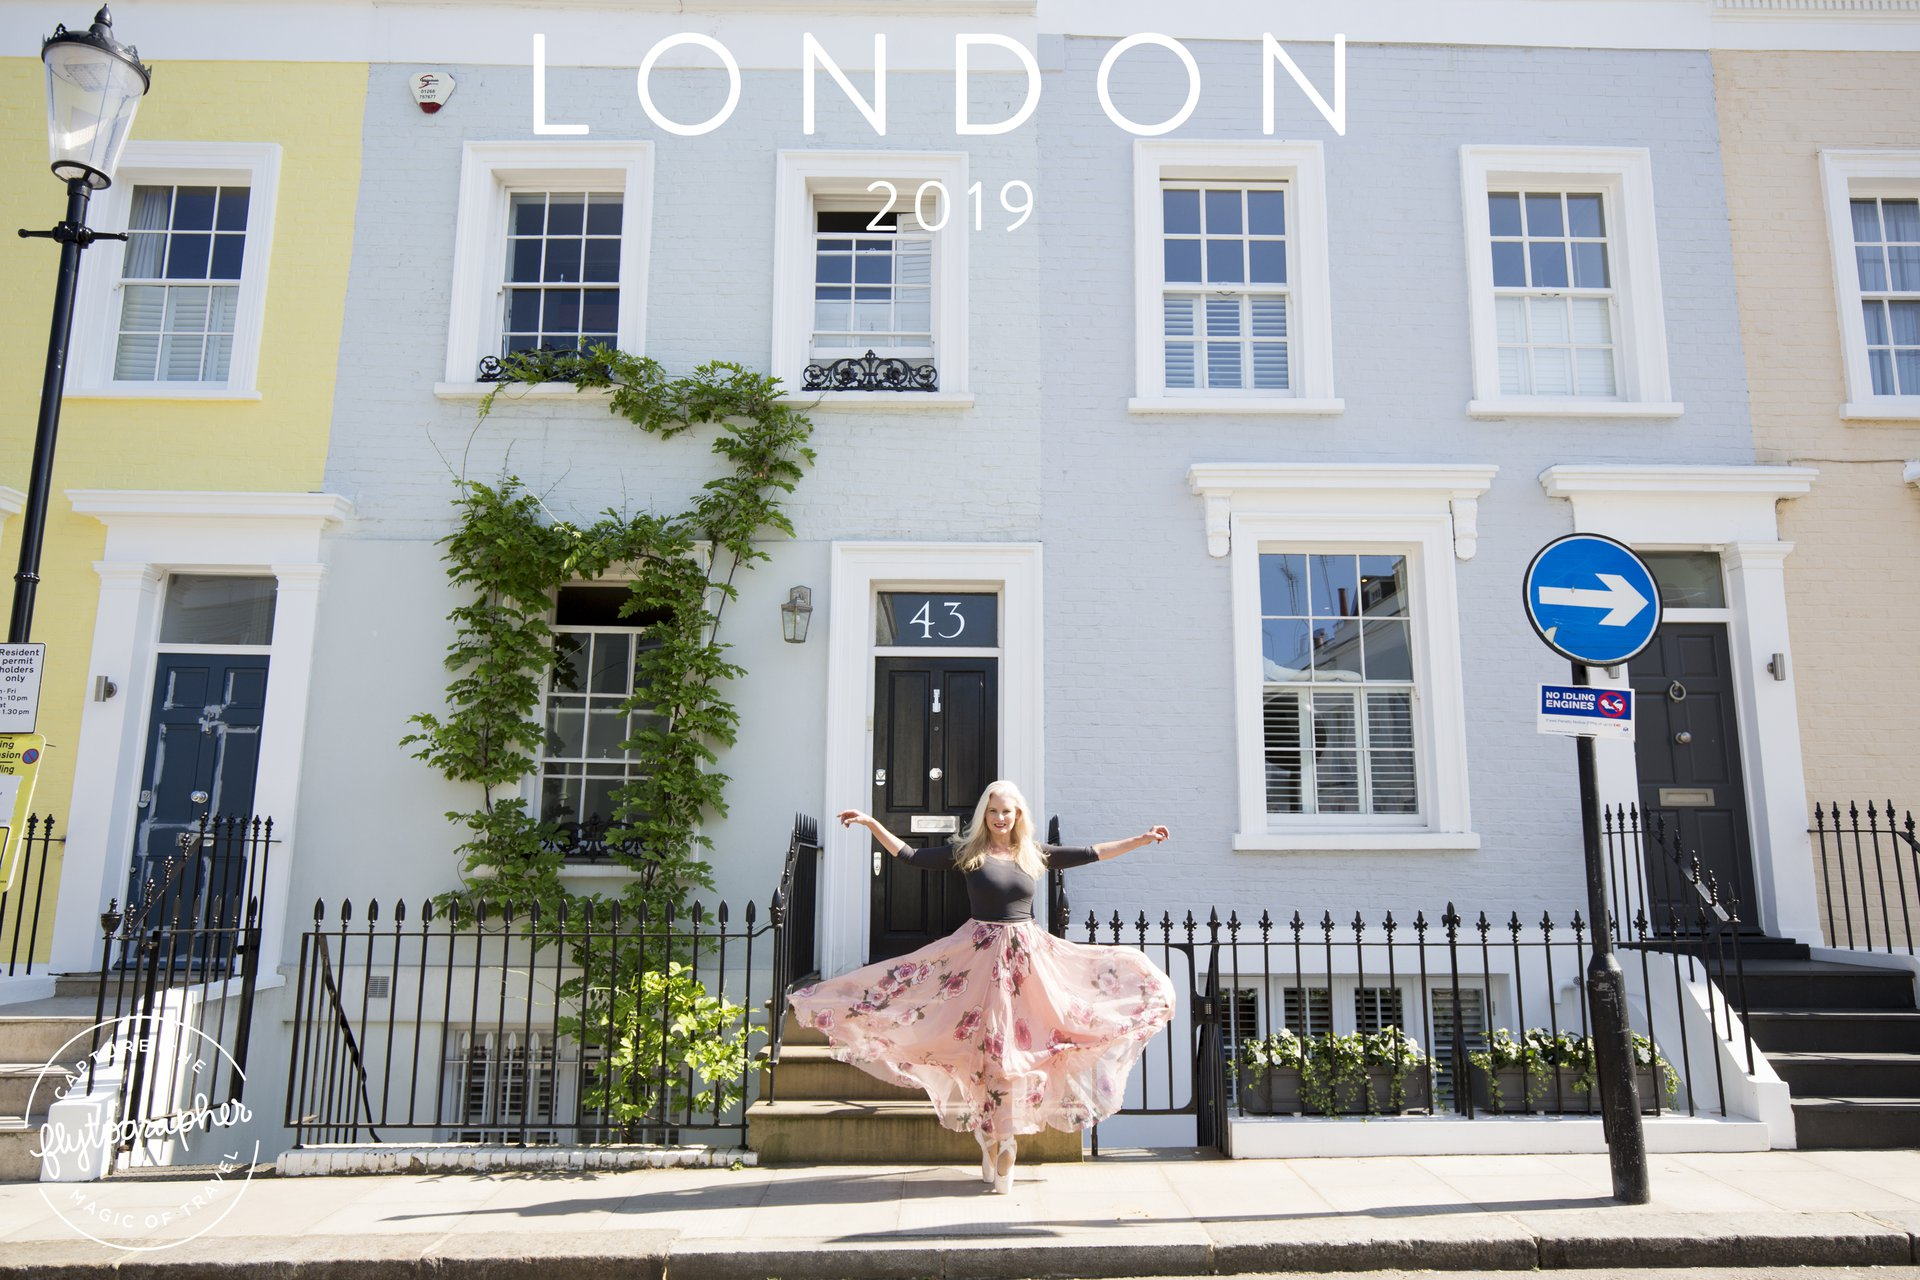 Flytographer Travel Story - Neighbourhood Ballet in Notting Hill (London)